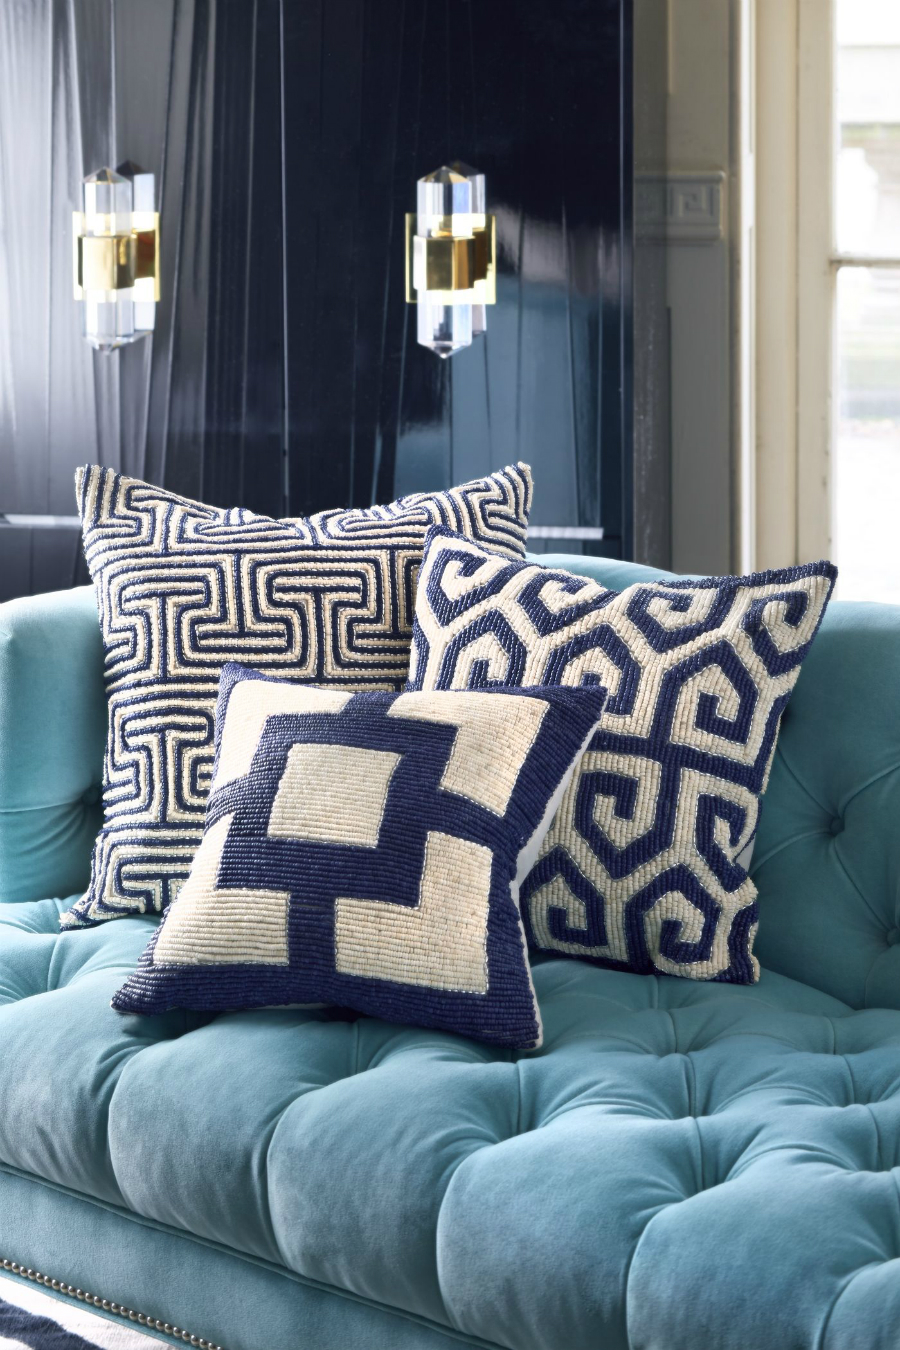 Upholstery Fabrics Inspiration: How to Style with Decorative Pillows upholstery fabrics inspiration Upholstery Fabrics Inspiration: How to Style with Decorative Pillows Upholstery Fabrics Inspiration How to Style with Decorative Pillows6